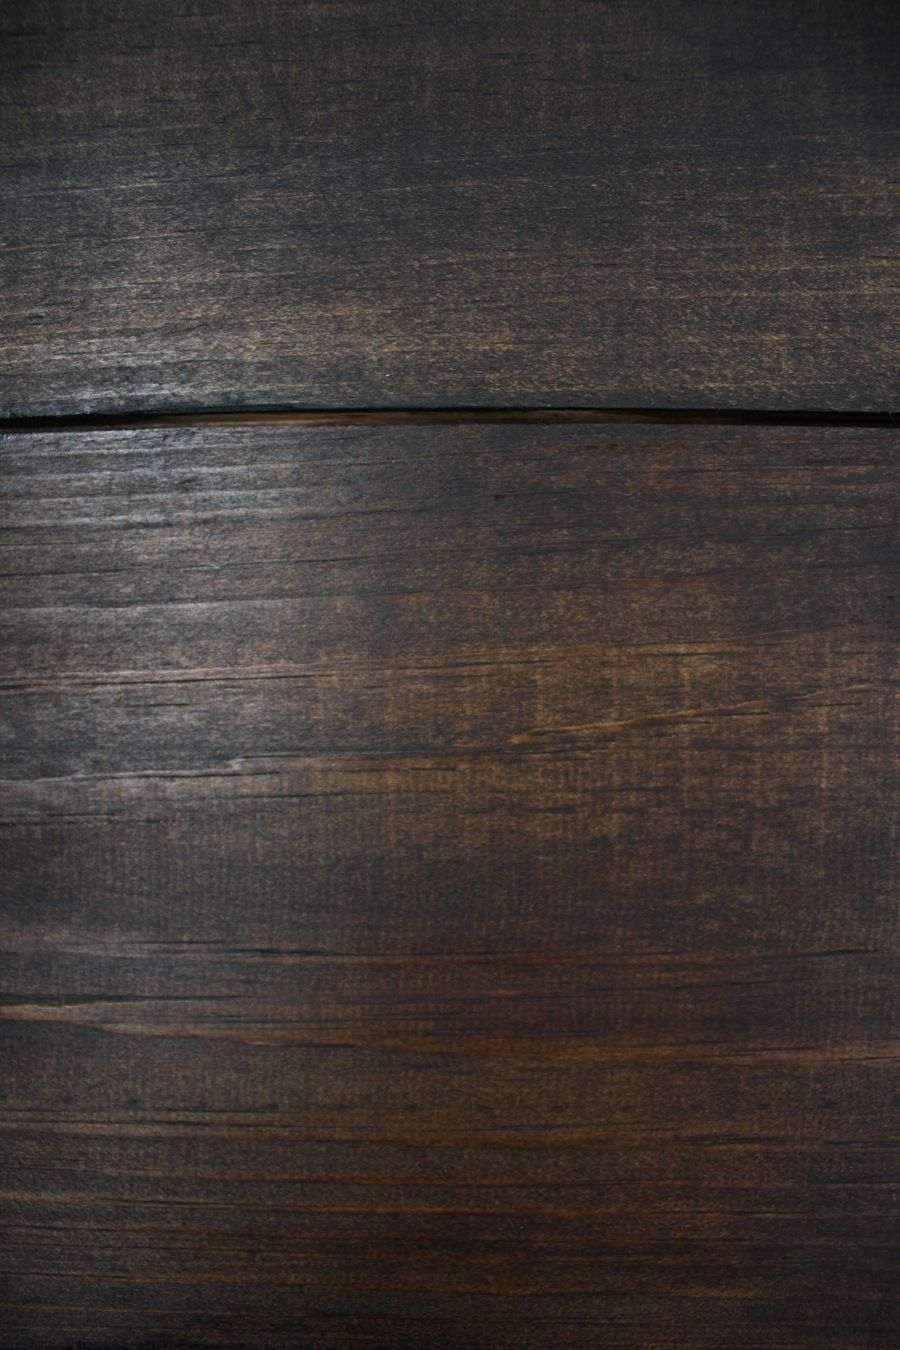 Adding A Coat Of Jacobean Minwax Stain Over The Dark Walnut Left This Beautiful Rich Color